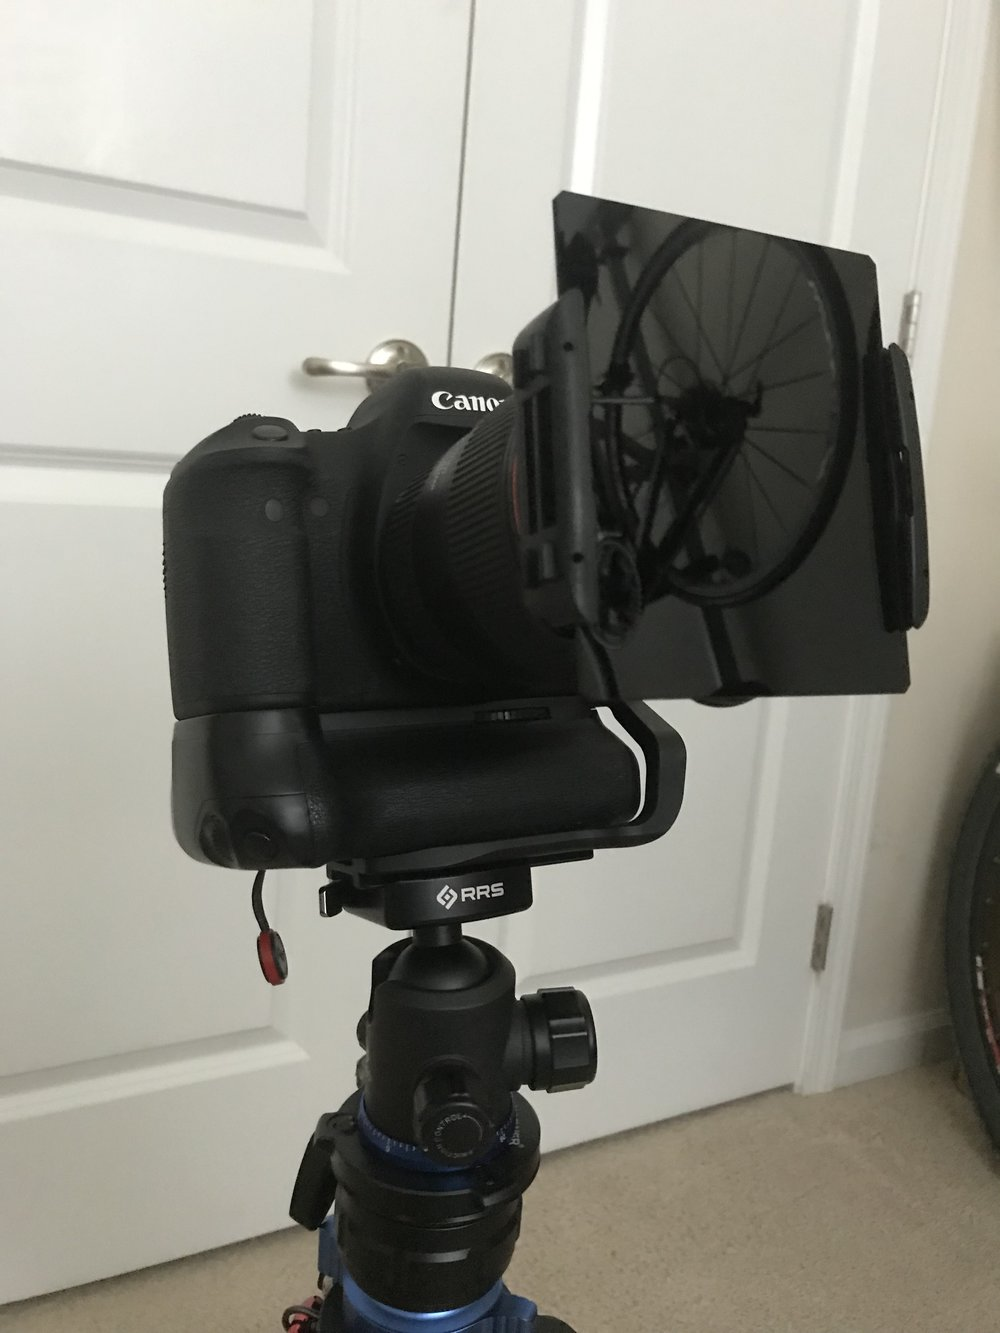 Here's my setup. I use square filters. I use a Colin filter holder with a Haida 10 stop ND filter.